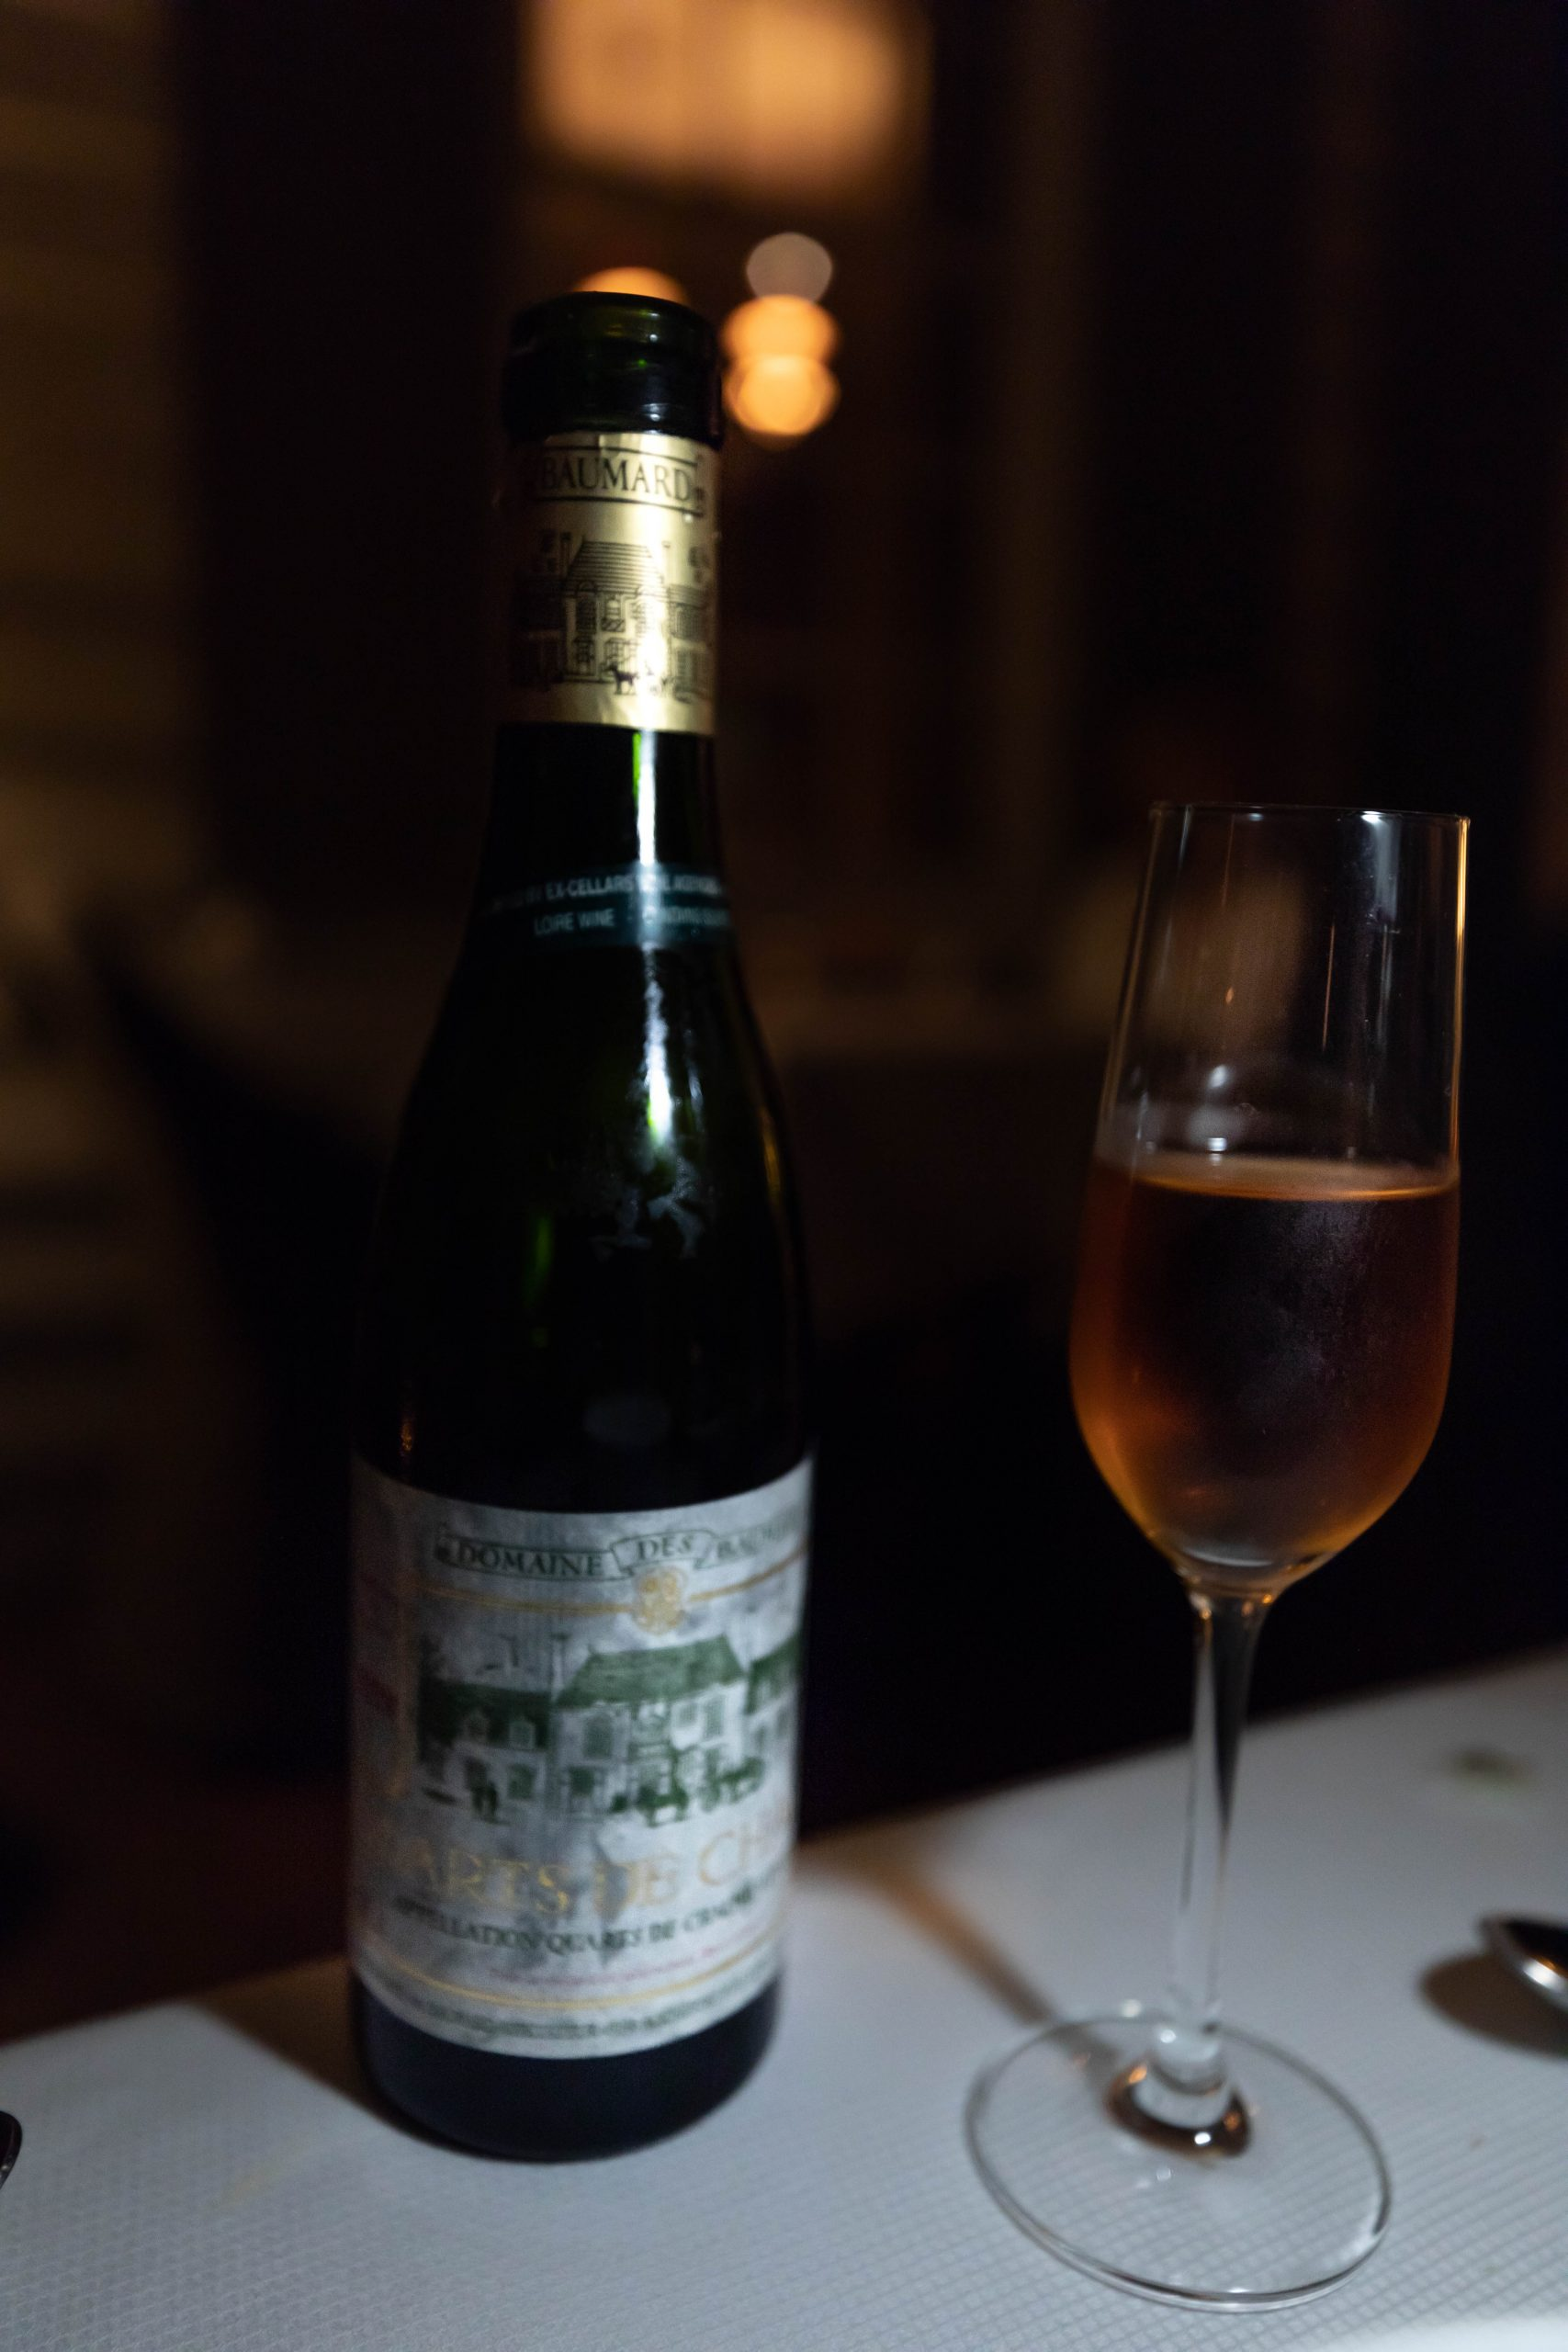 1999 Domaine des Baumard Quatres de Chaume from the Loire Valley in France